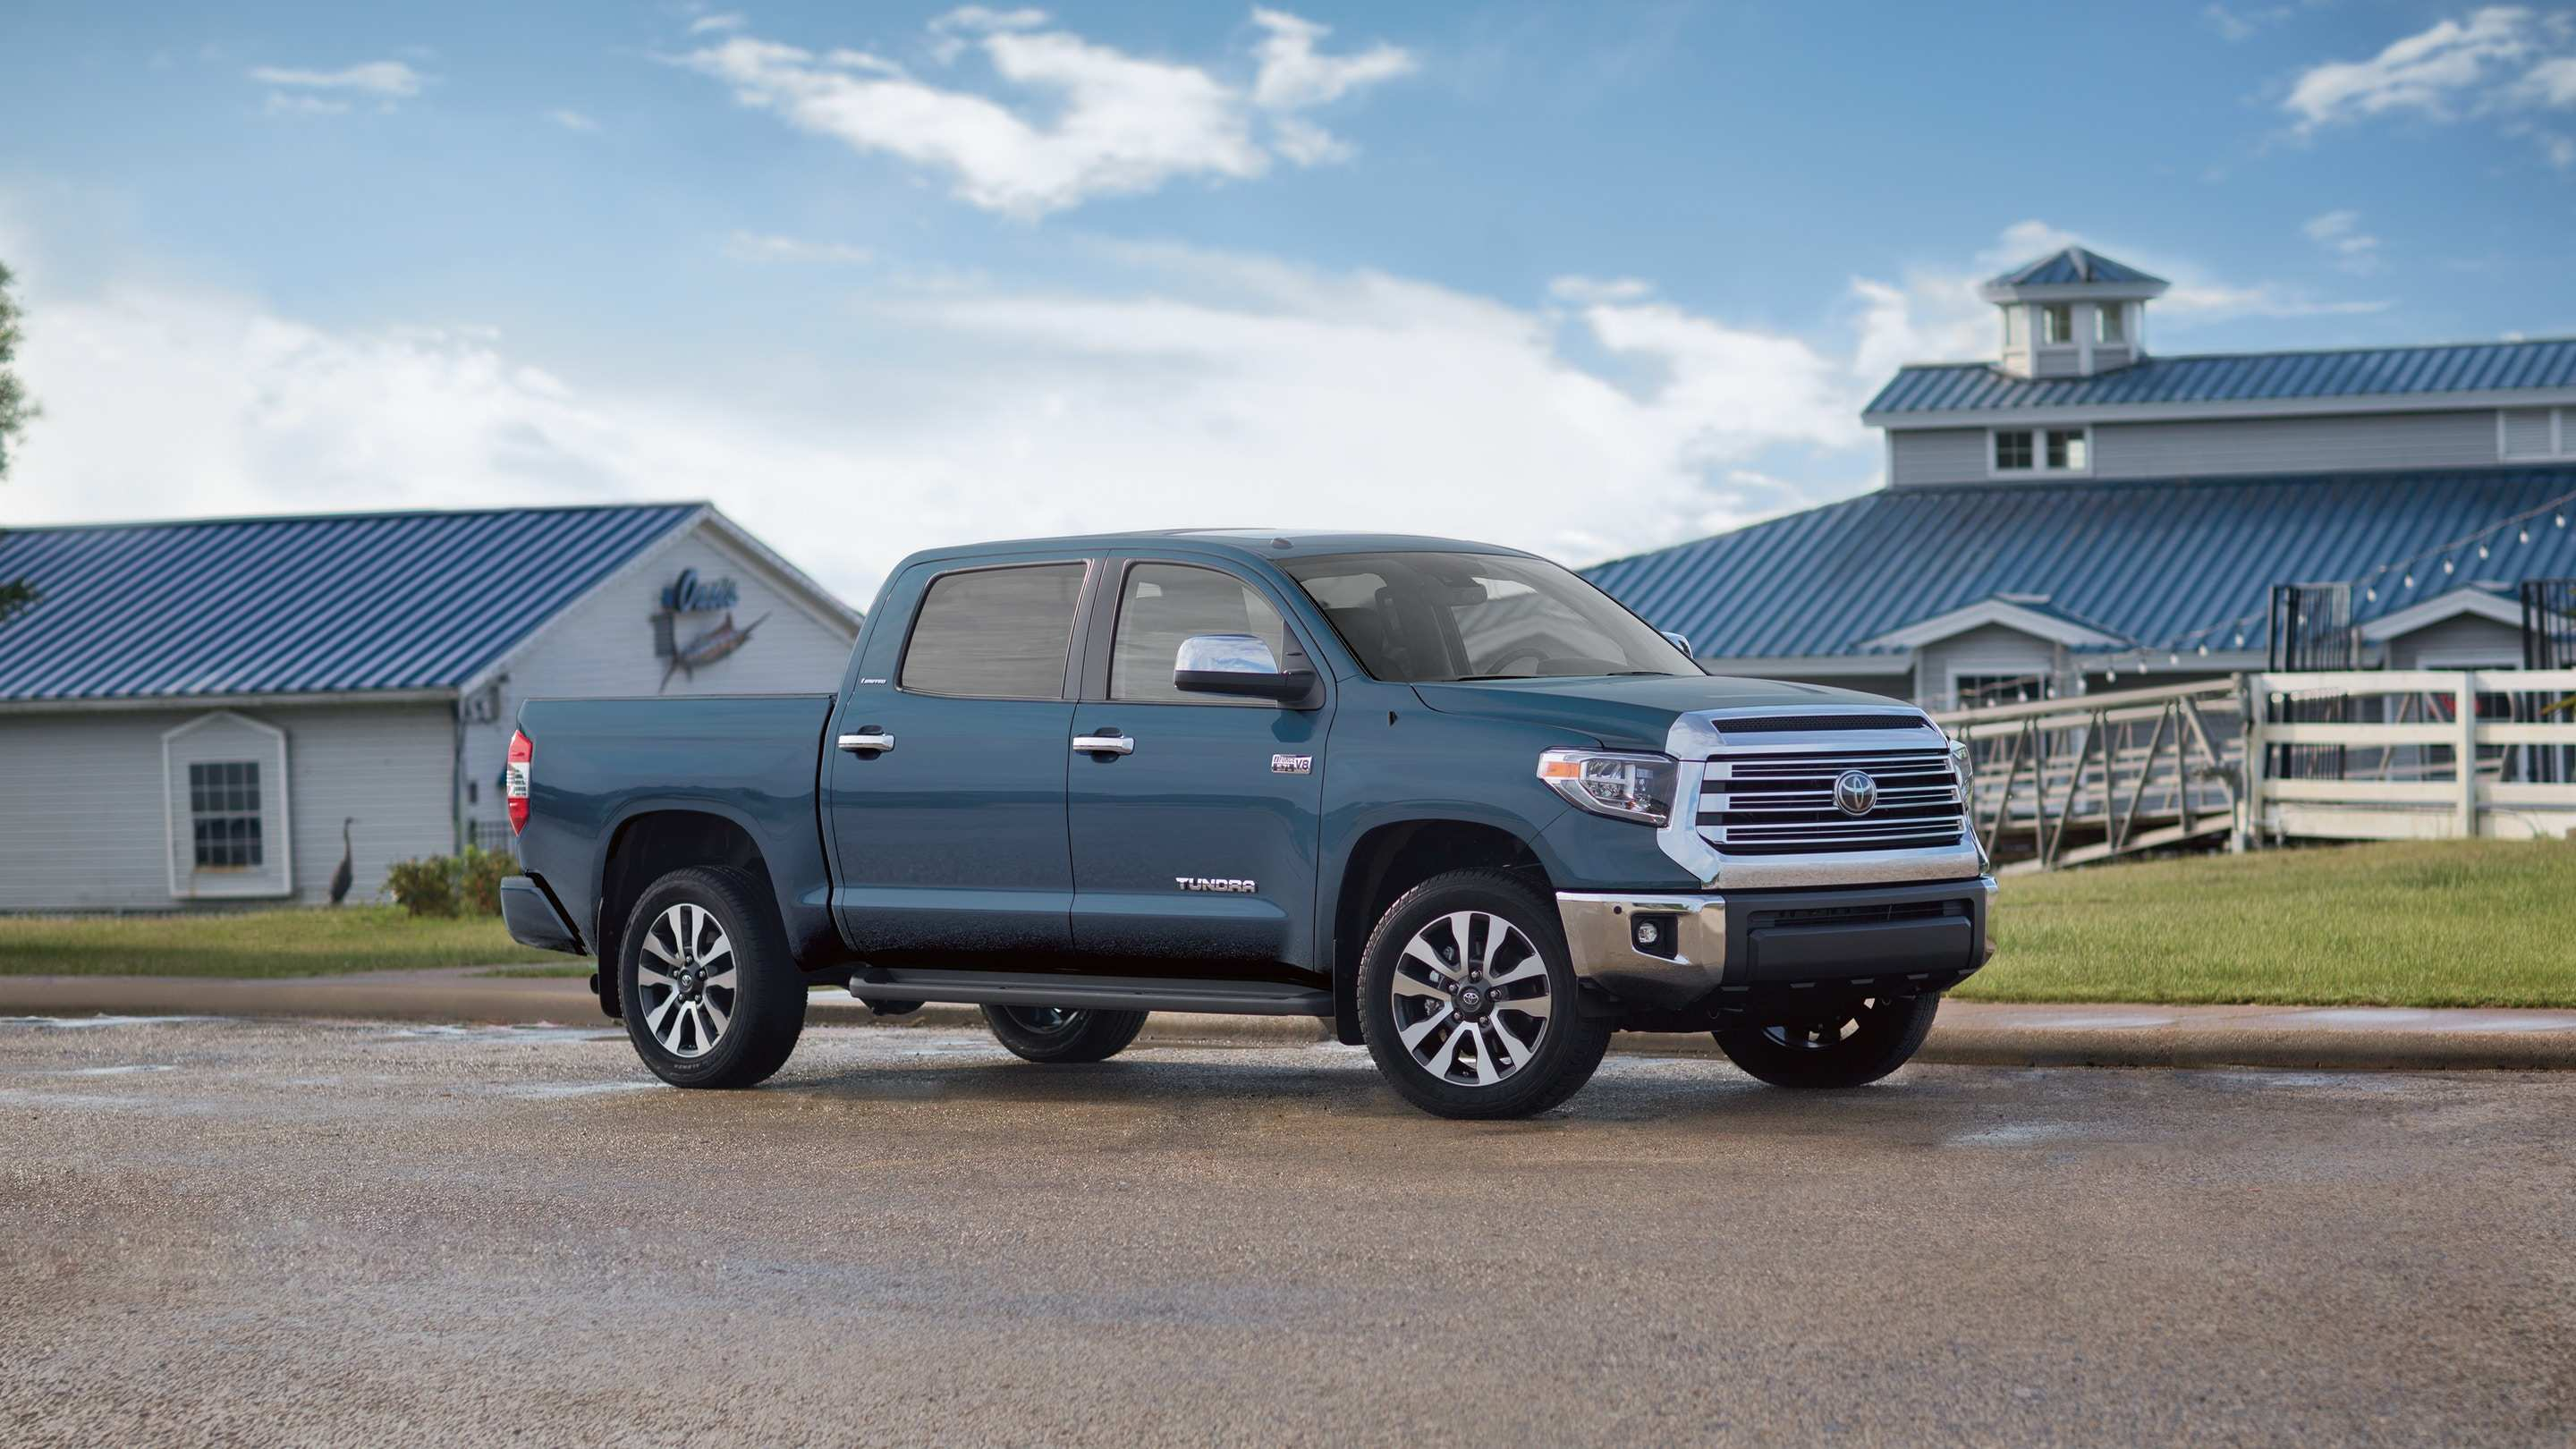 79 The Best 2019 Toyota Tundra Truck Images